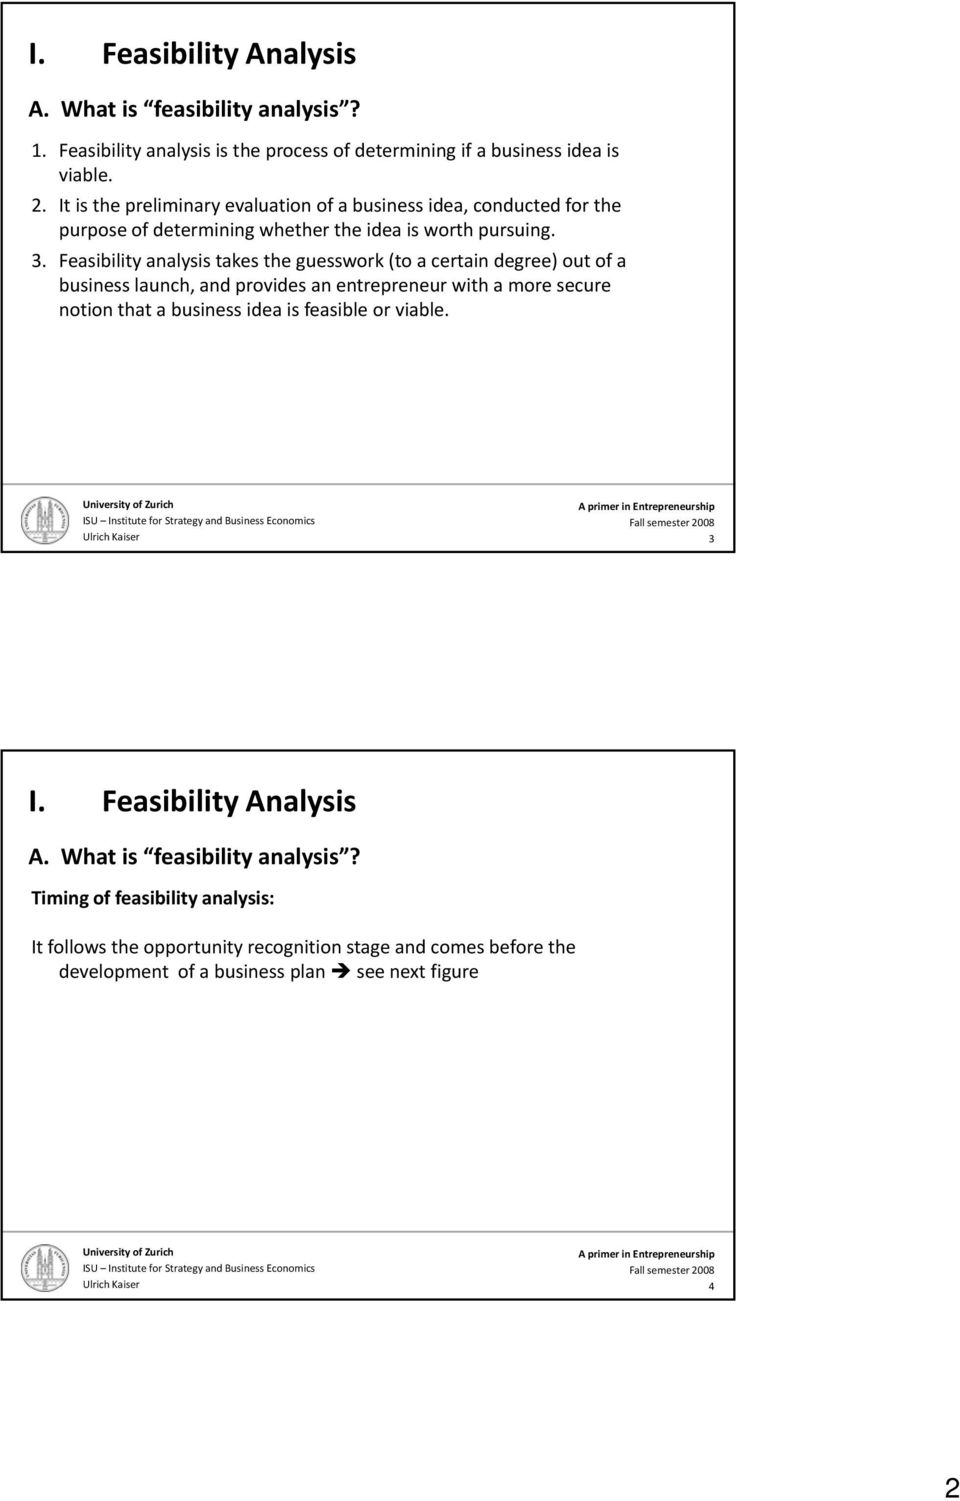 Feasibility analysis takes the guesswork (to a certain degree) out of a business launch, and provides an entrepreneur with a more secure notion that a